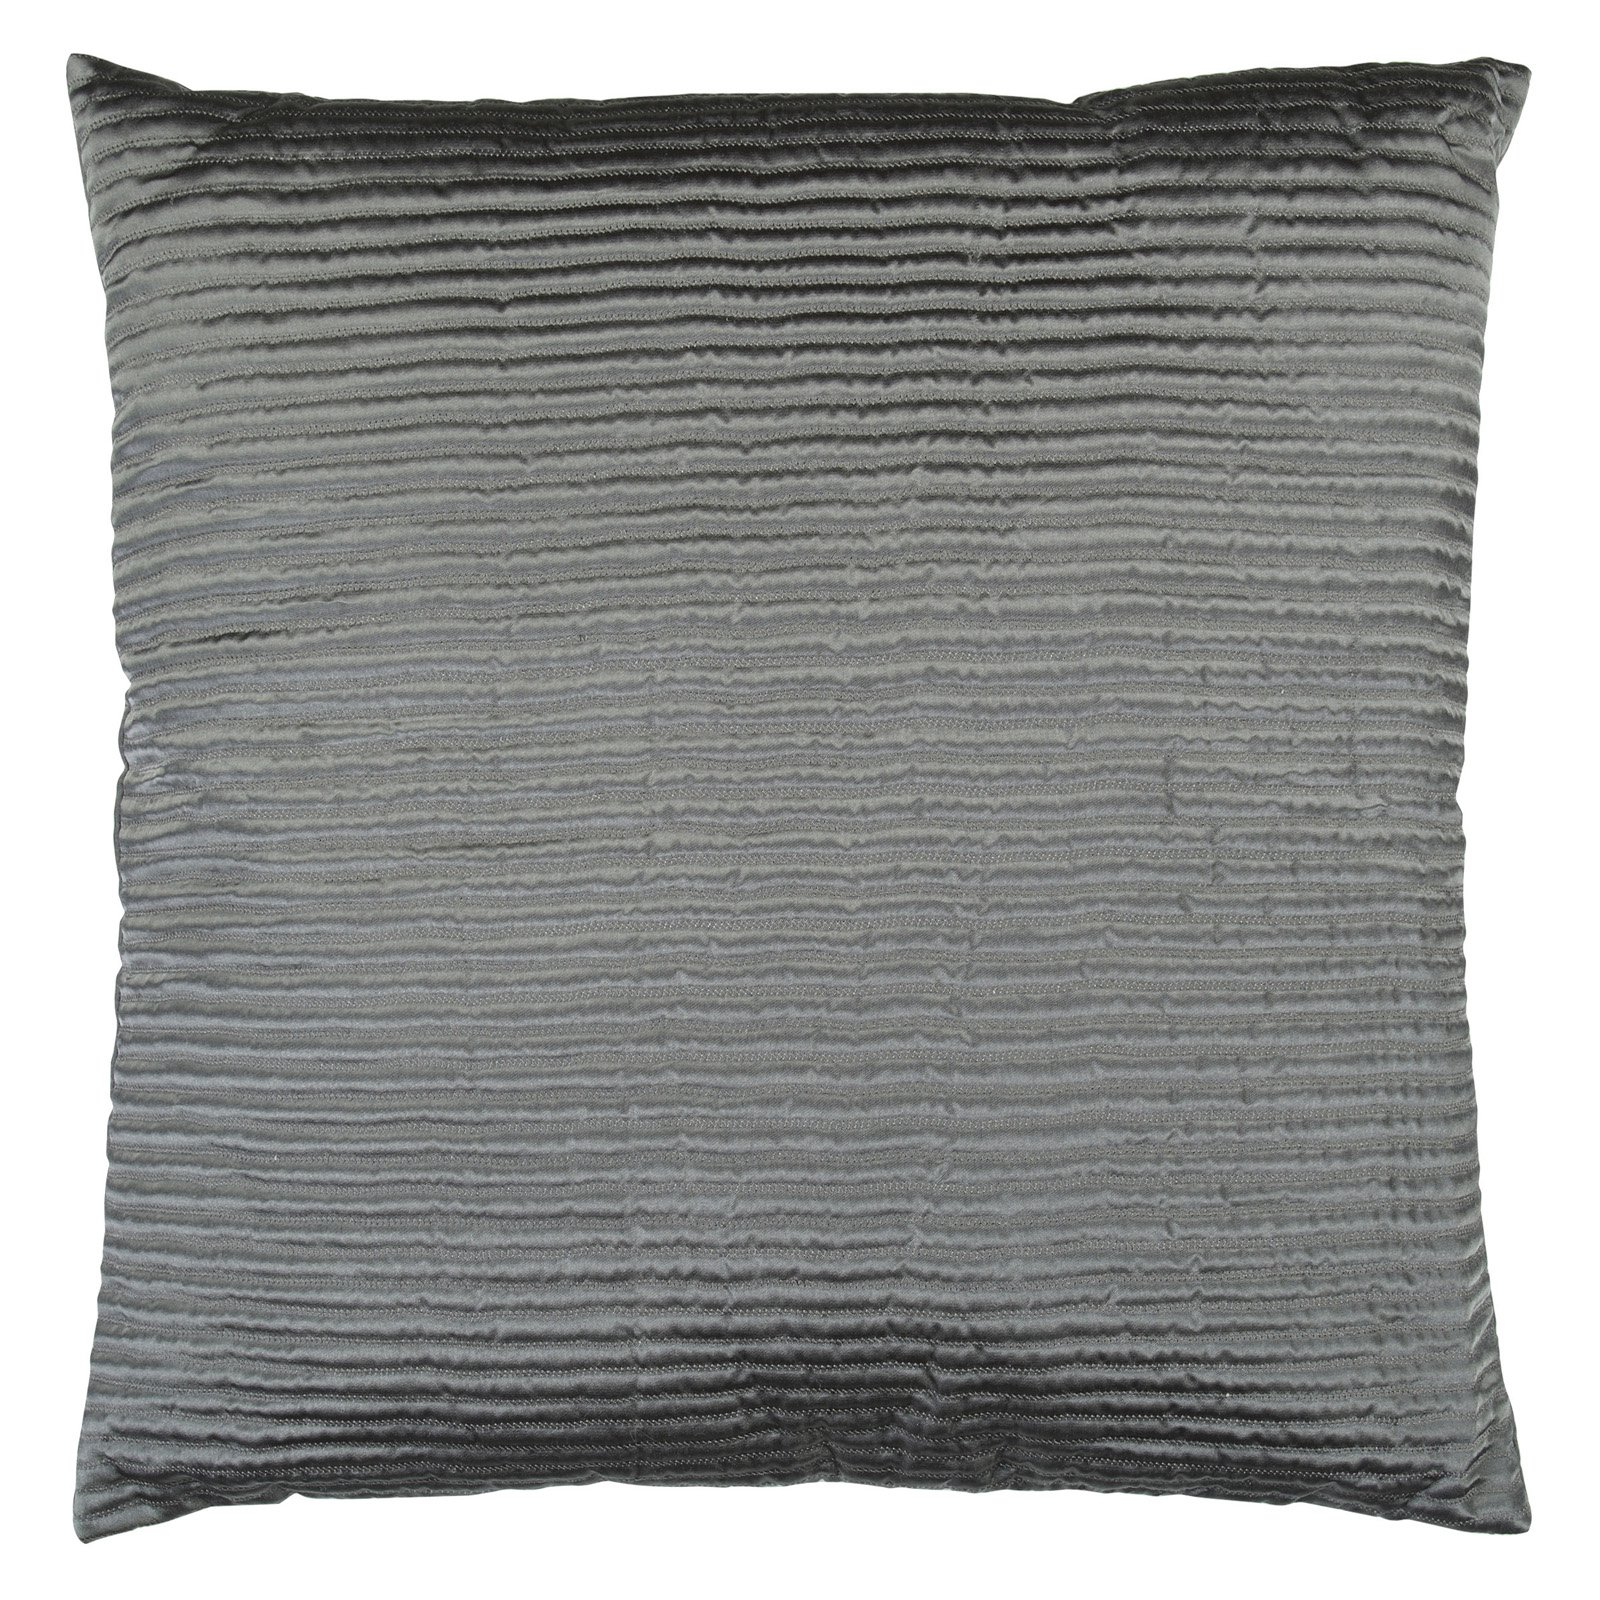 Surya Winston Decorative Pillow - Gray - Poly - 22 x 22 in.